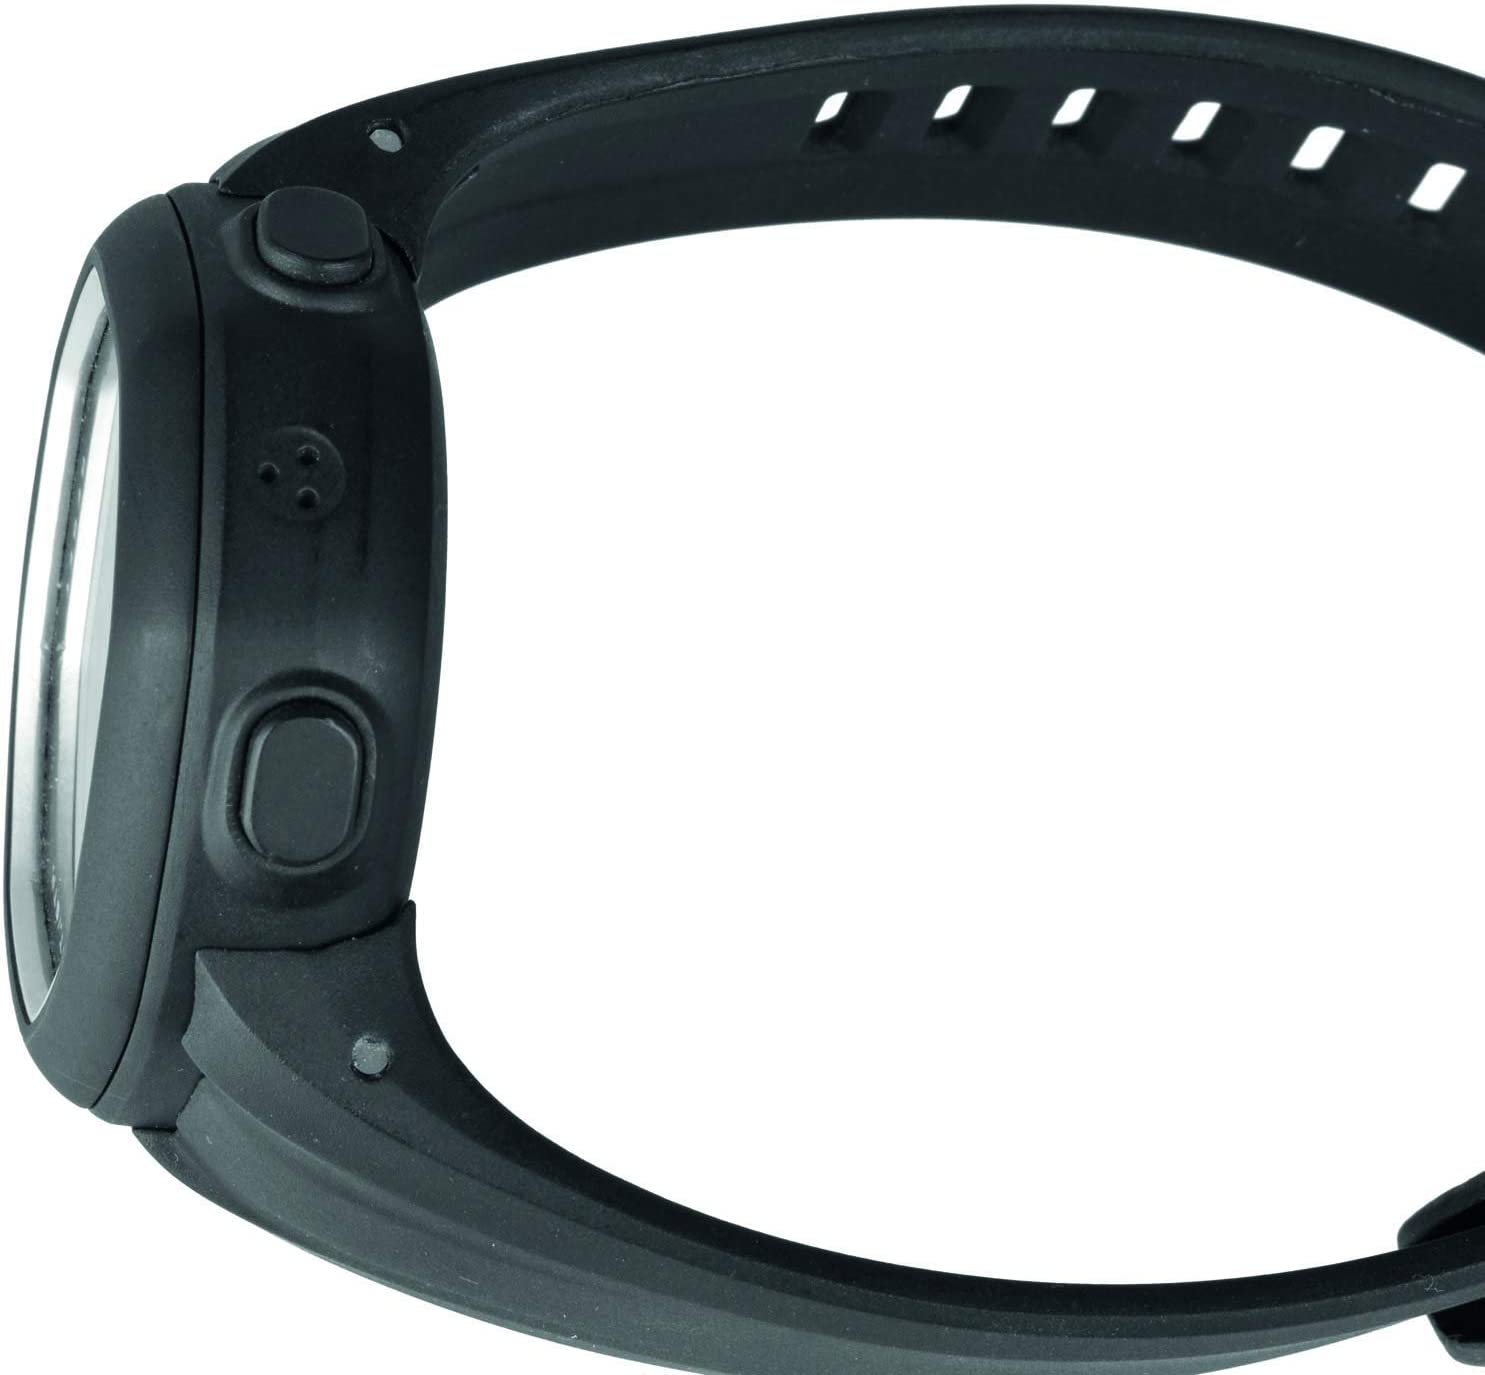 SEAC Driver Wrist-Mount Freediving Computer with Data Download System